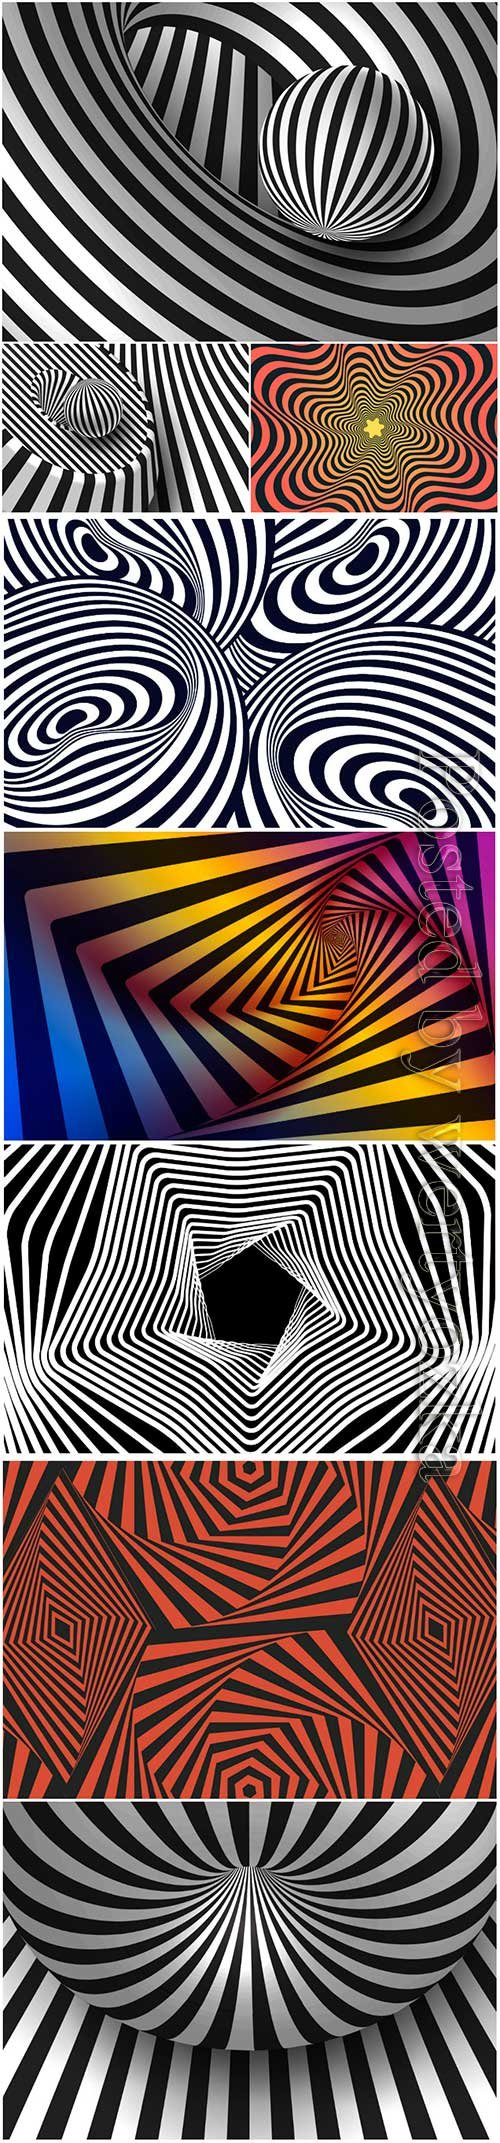 Psychedelic optical illusion vector background # 9